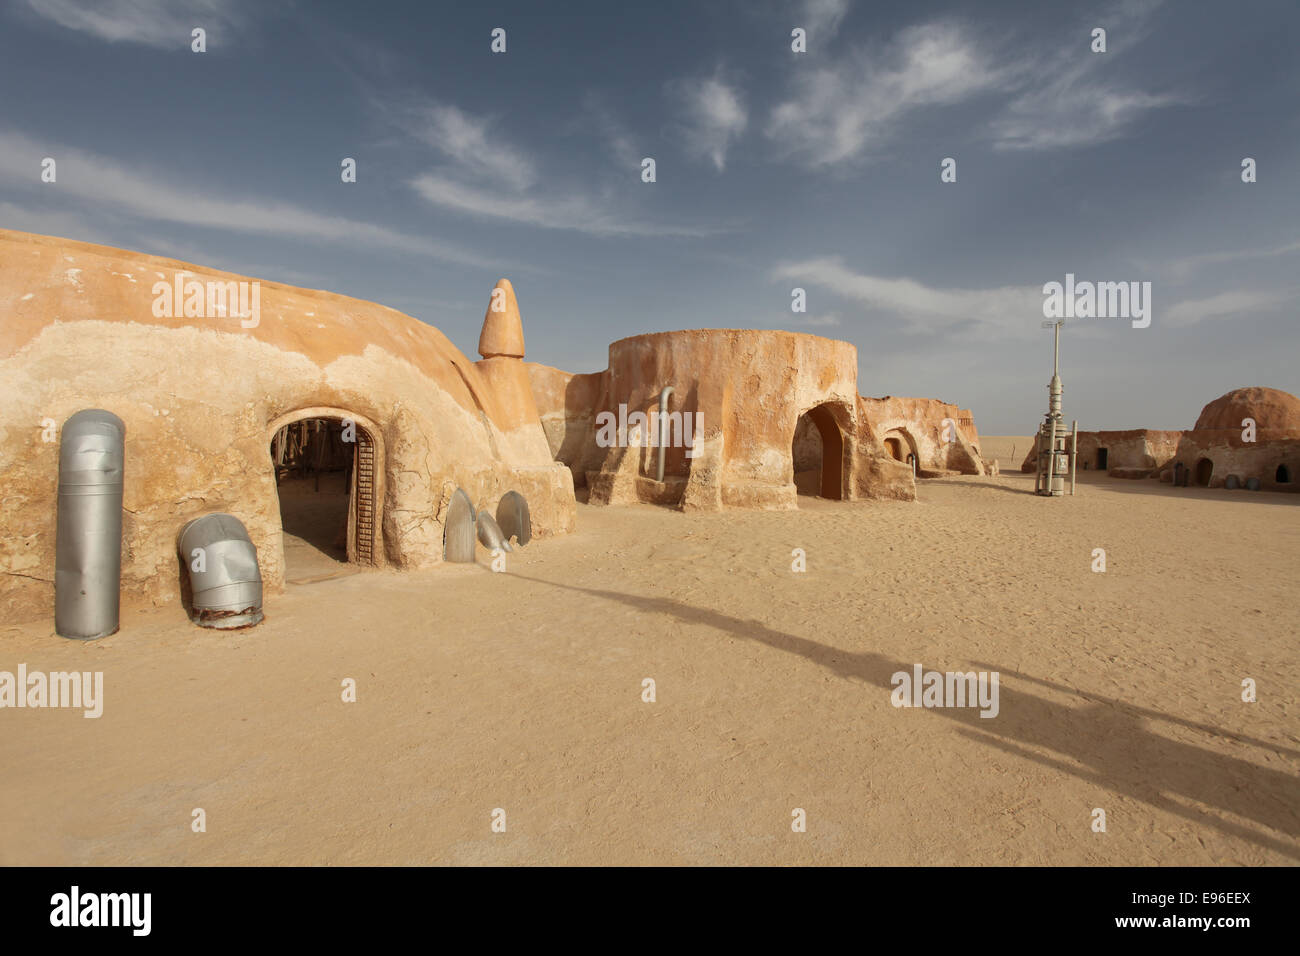 Spaceport in the desert - Stock Image